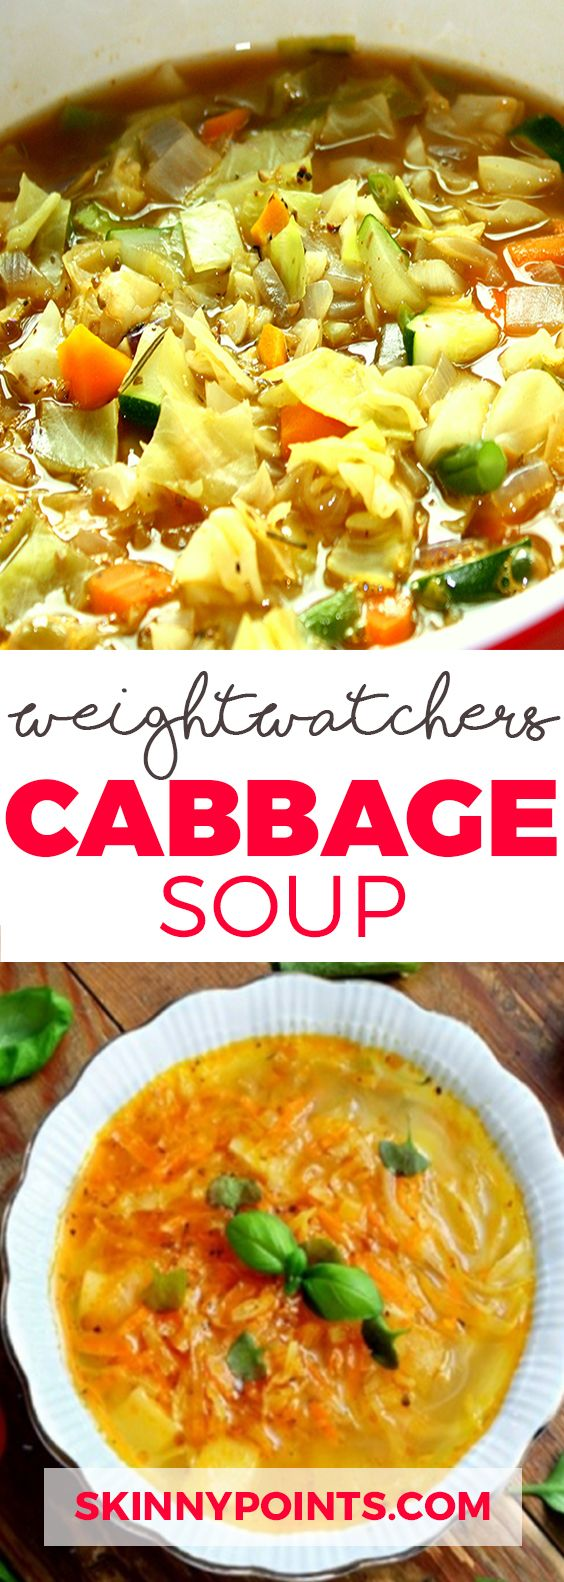 Weight Watchers Cabbage Soup - Come with Only 1 weight watchers SmartPoints